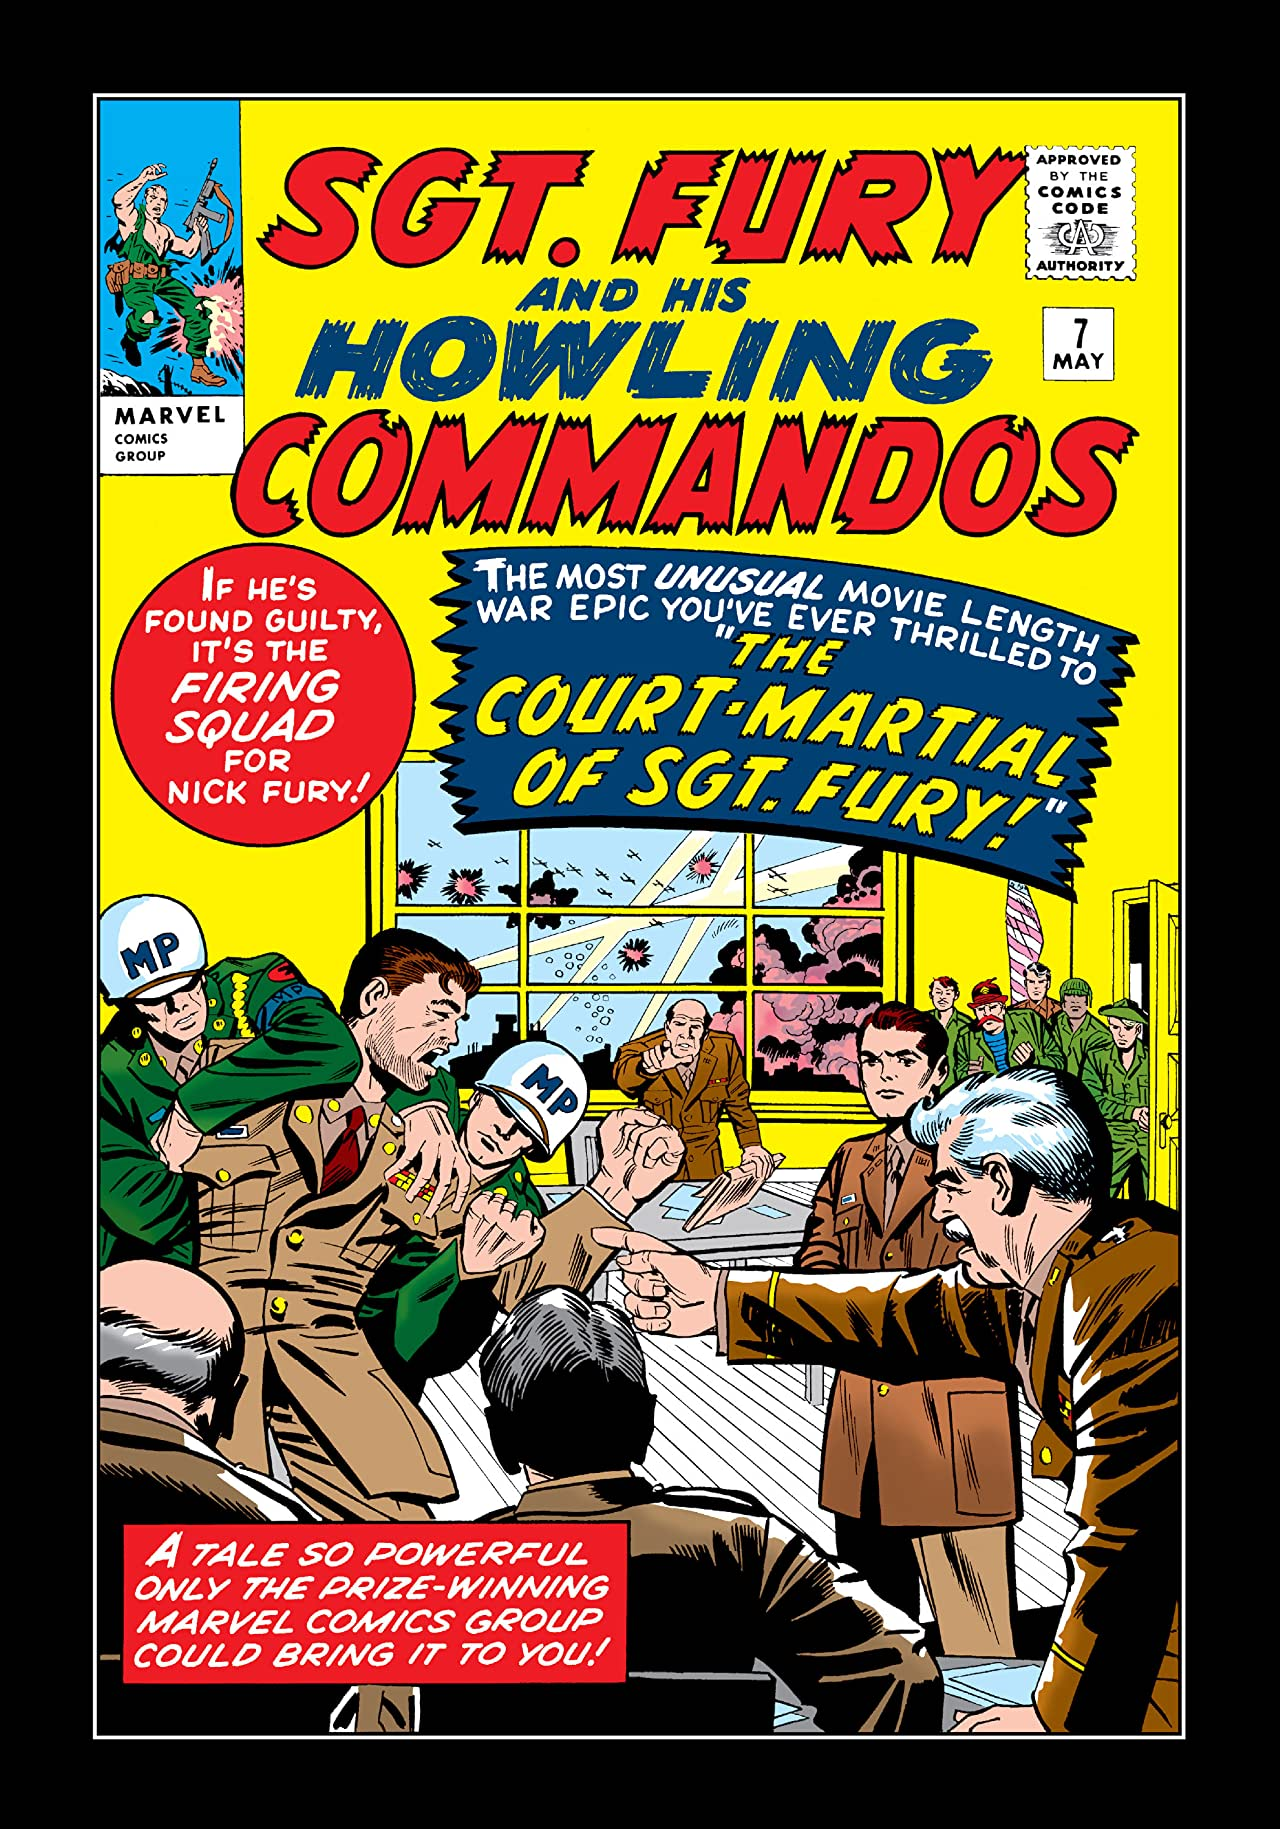 Sgt. Fury and His Howling Commandos (1963-1974) #7